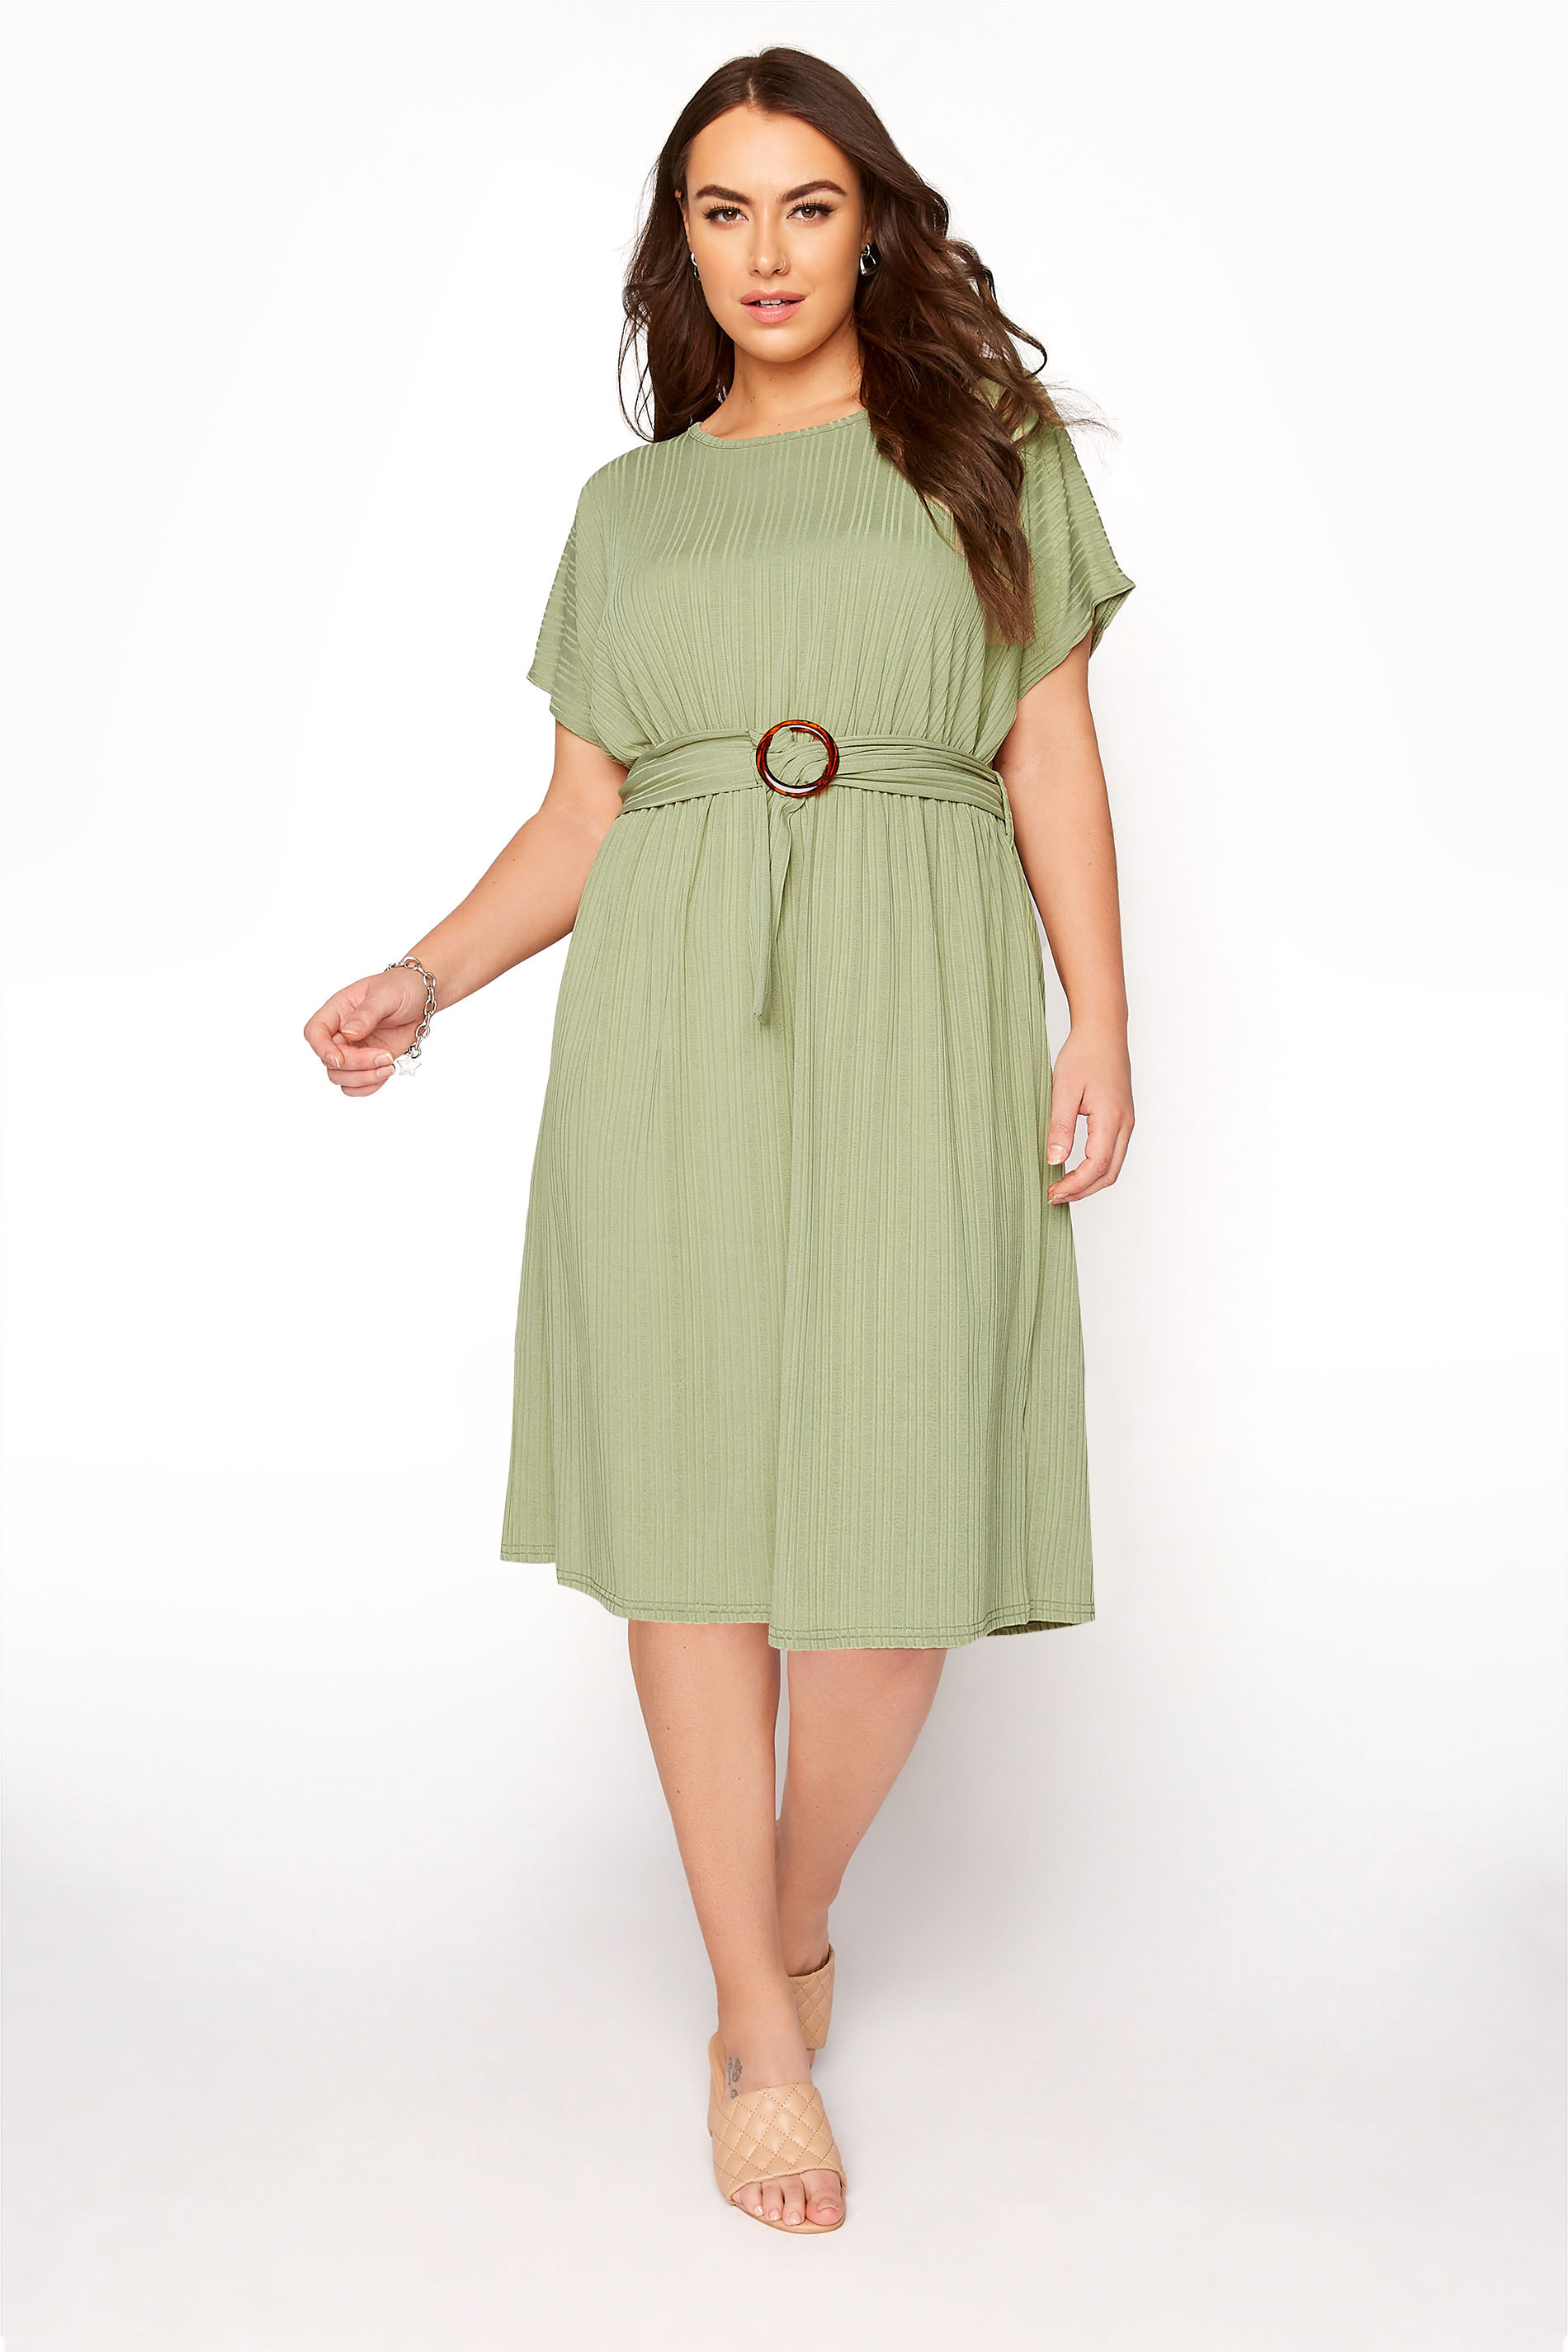 YOURS LONDON Green Ribbed Belted Dress_A.jpg